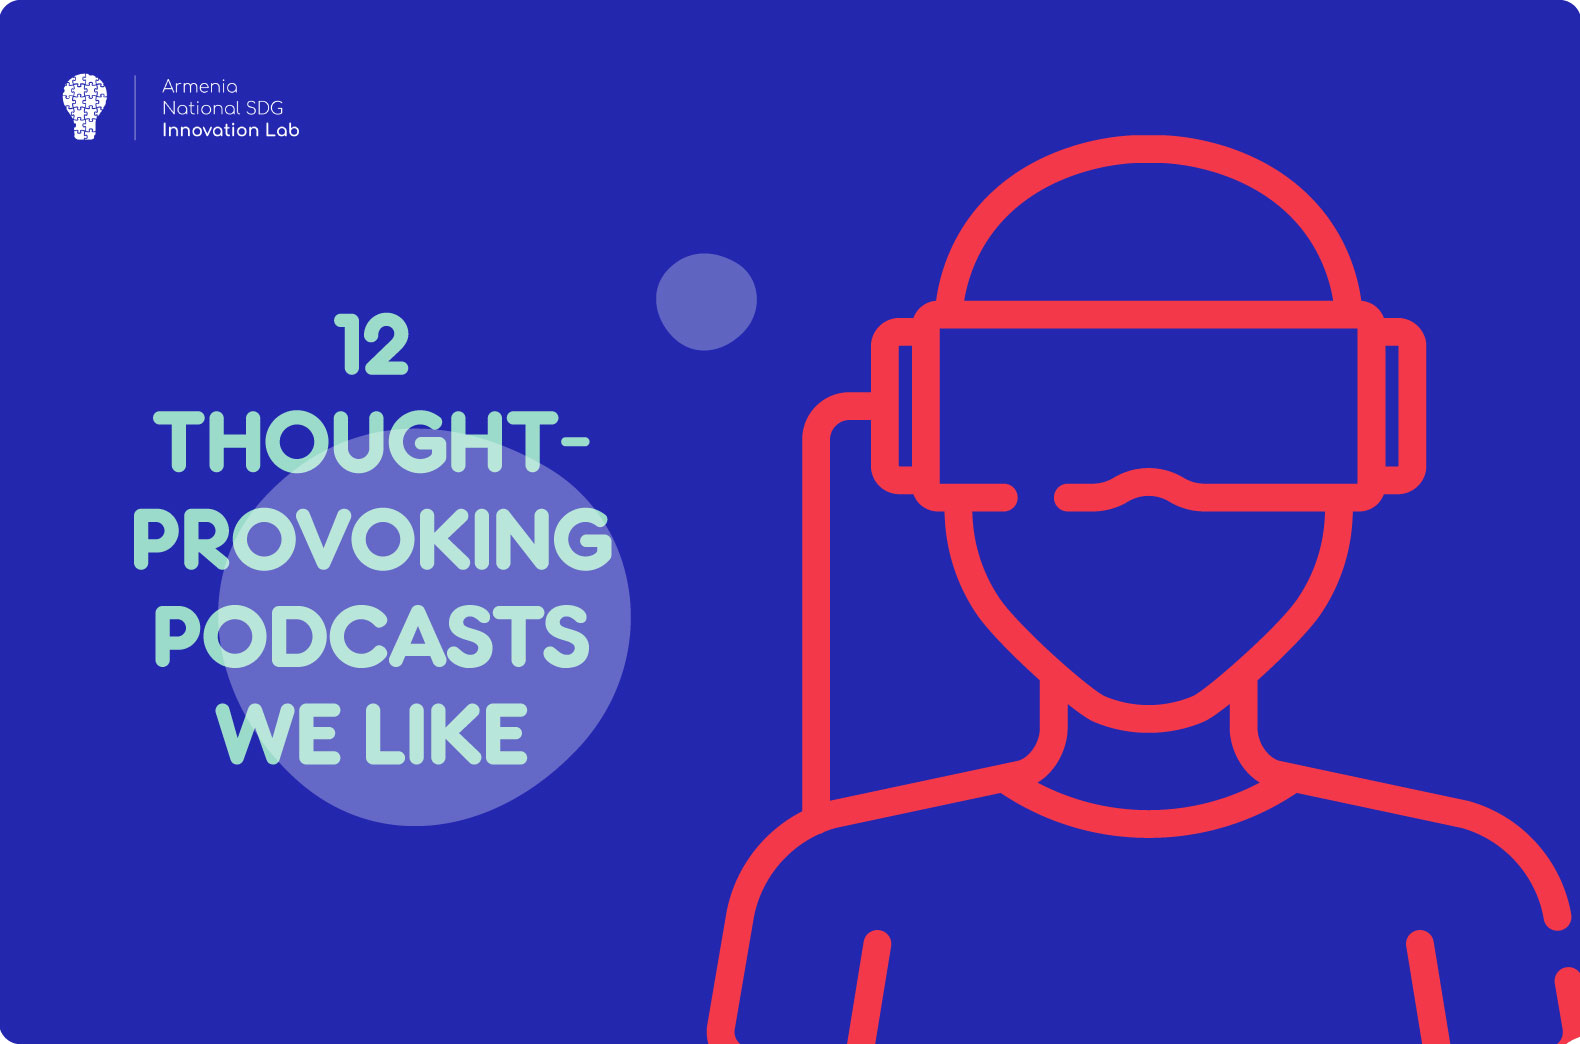 12 thought-provoking podcasts we like